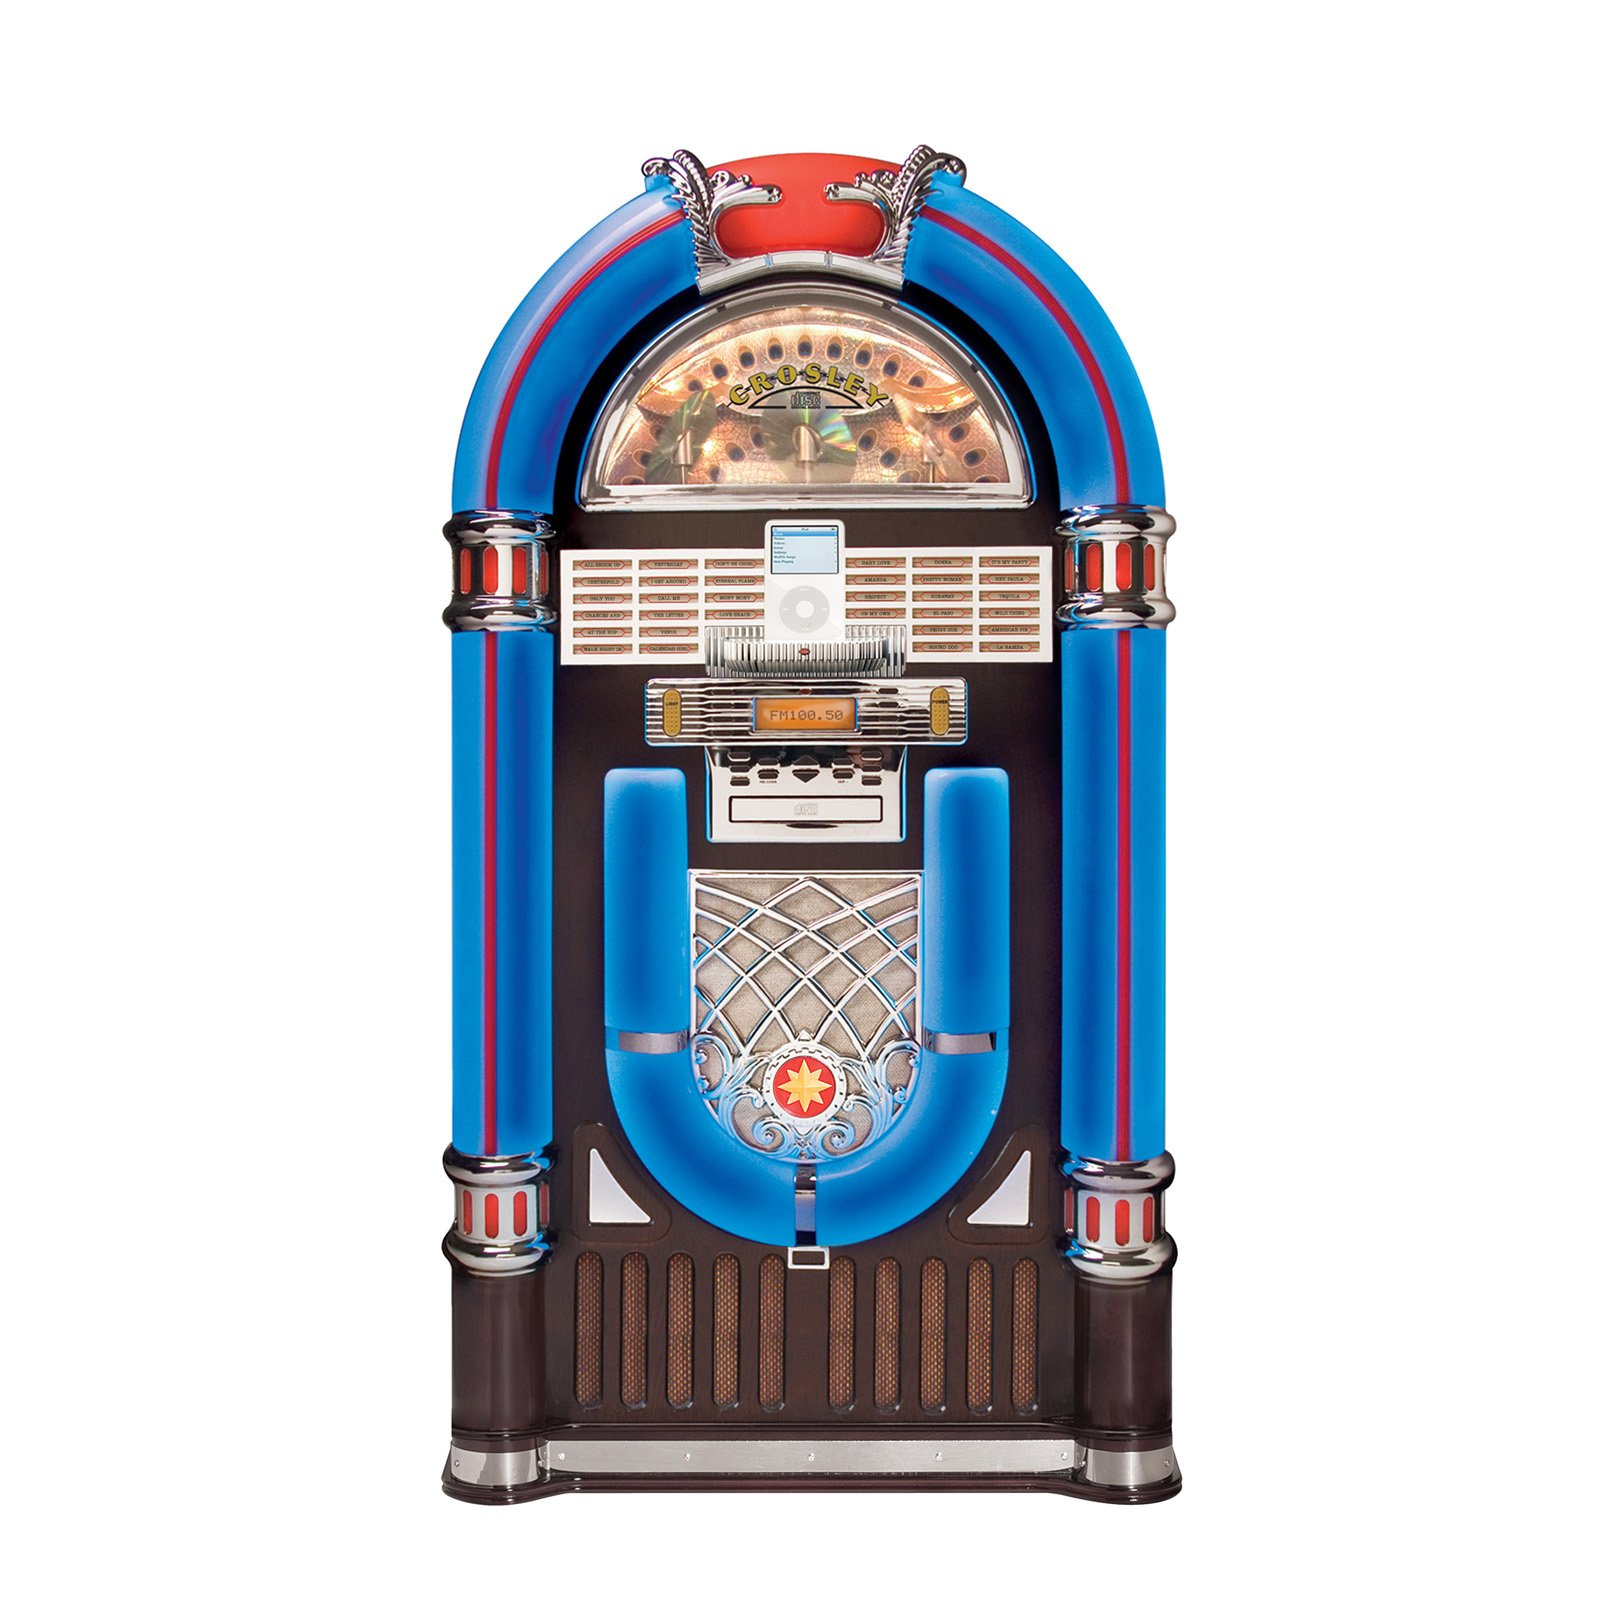 My Friday jukebox (21/4)